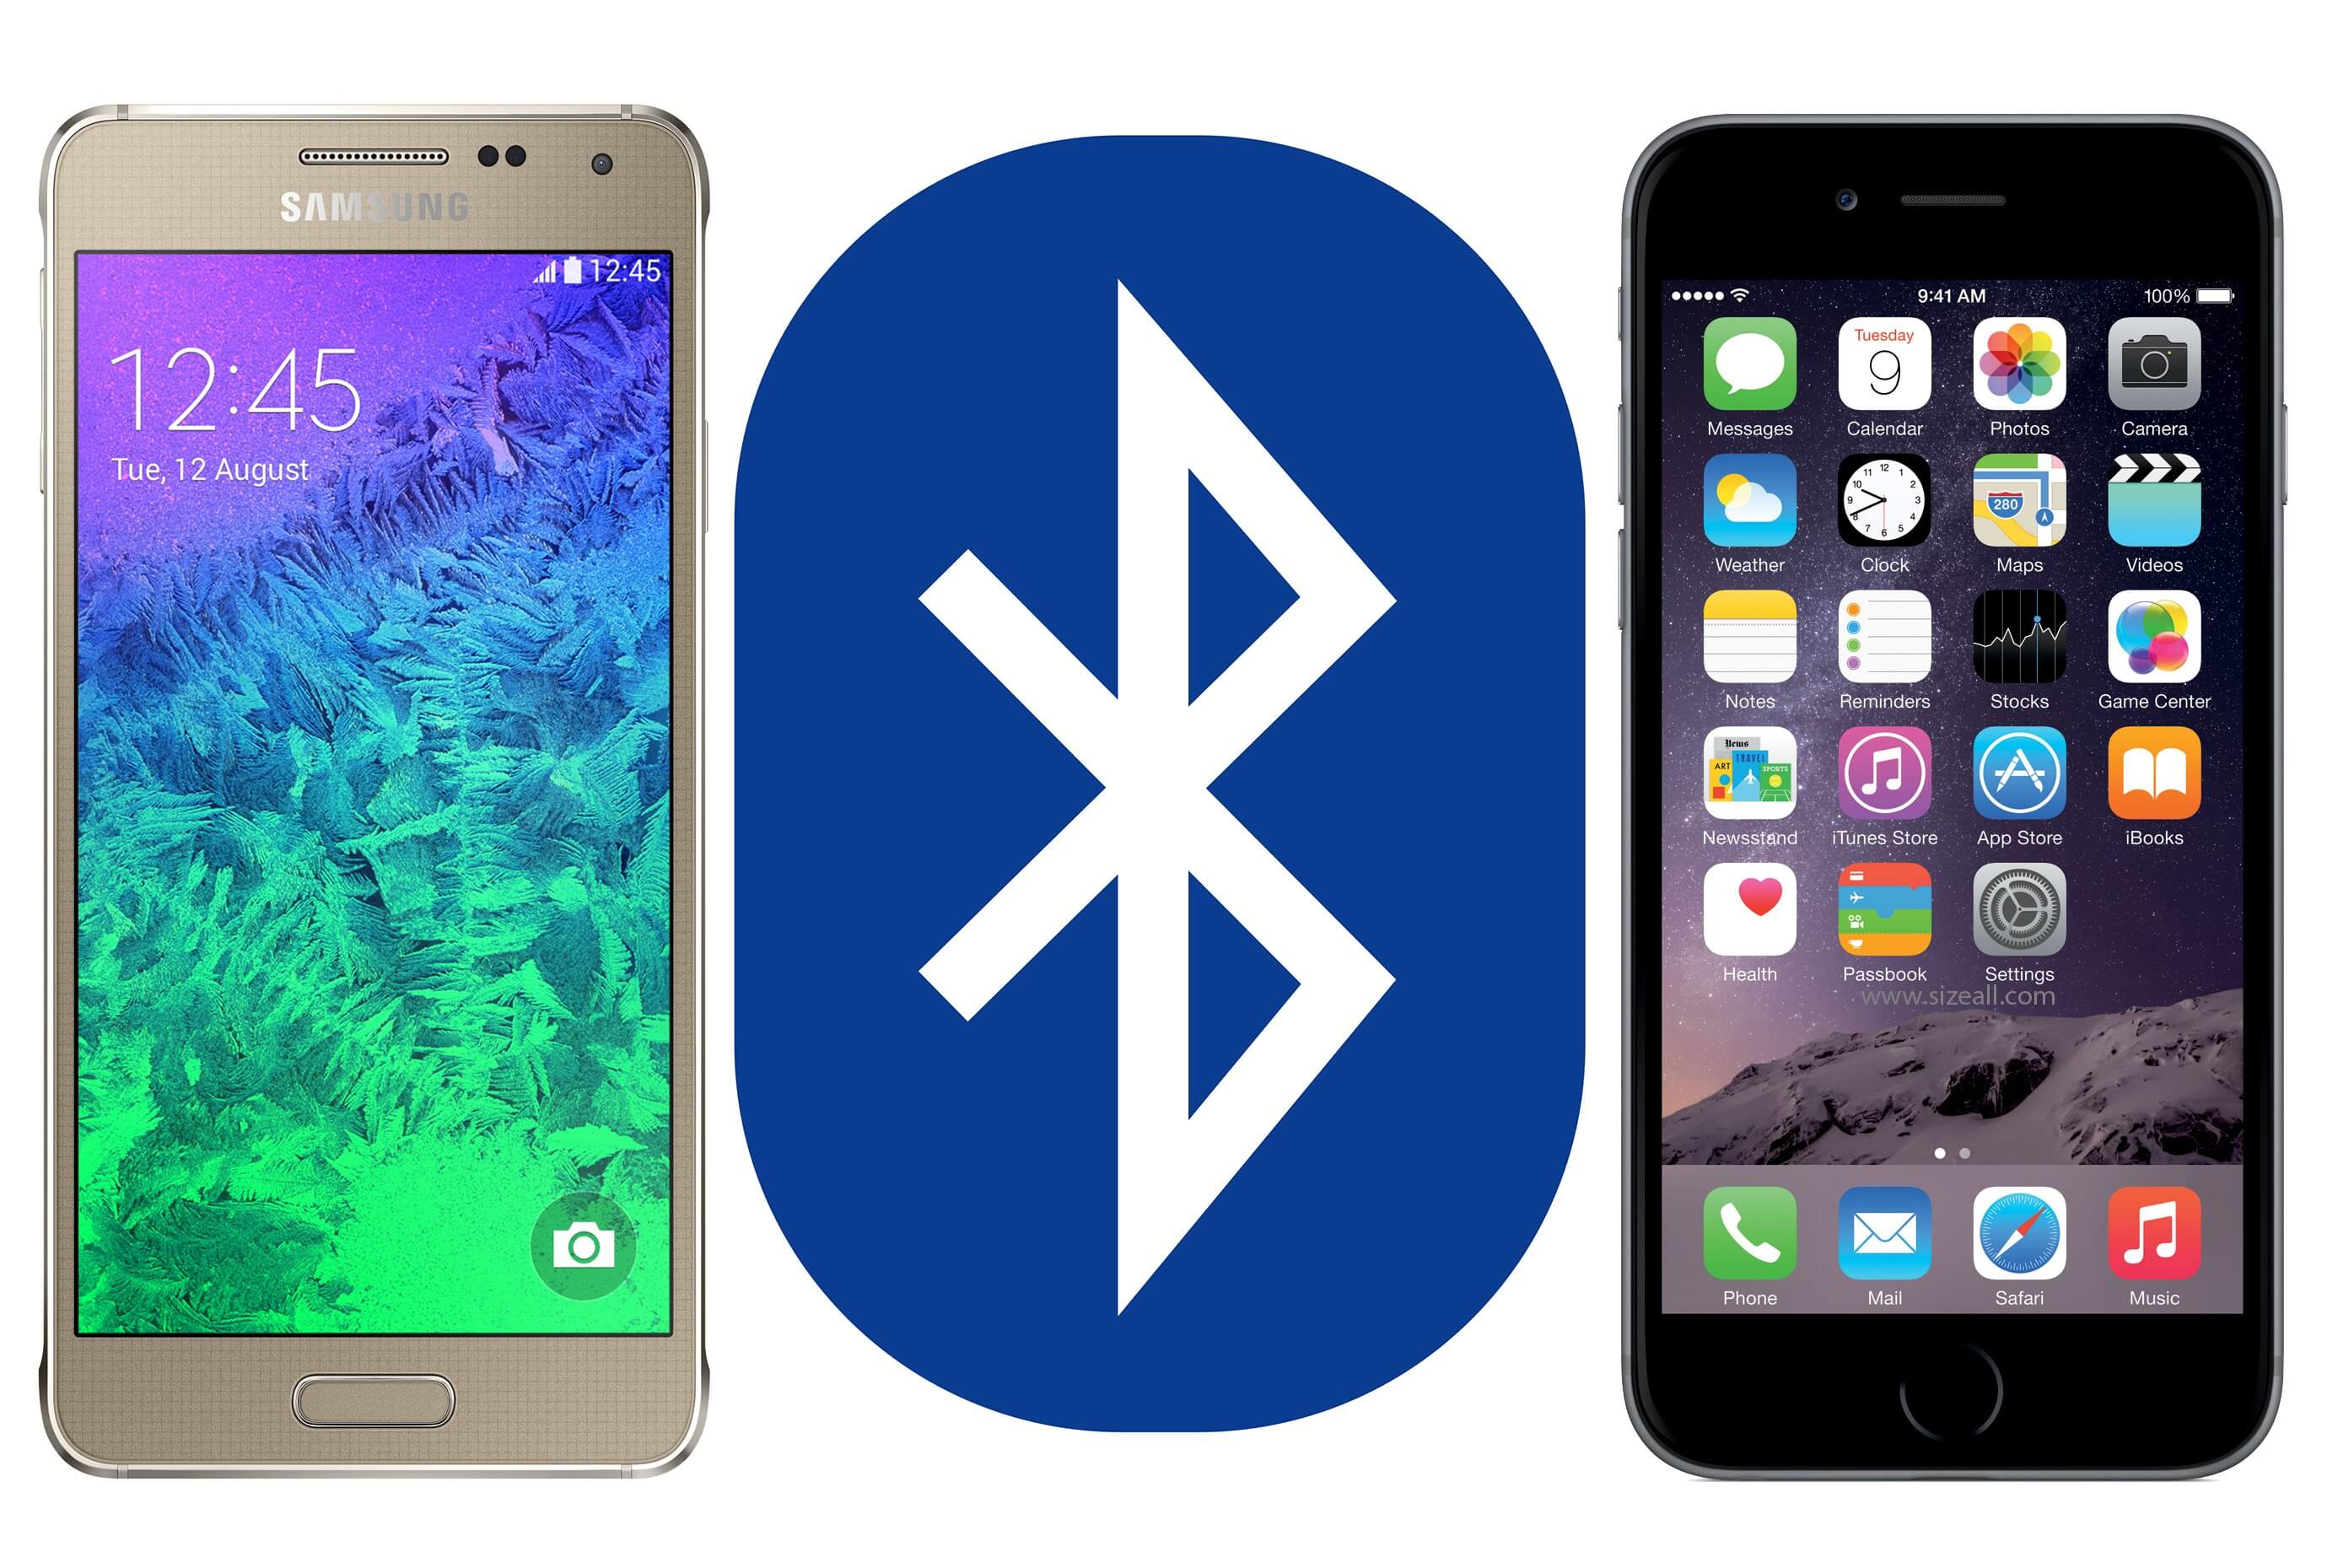 Bluetooth Mash on iPhone